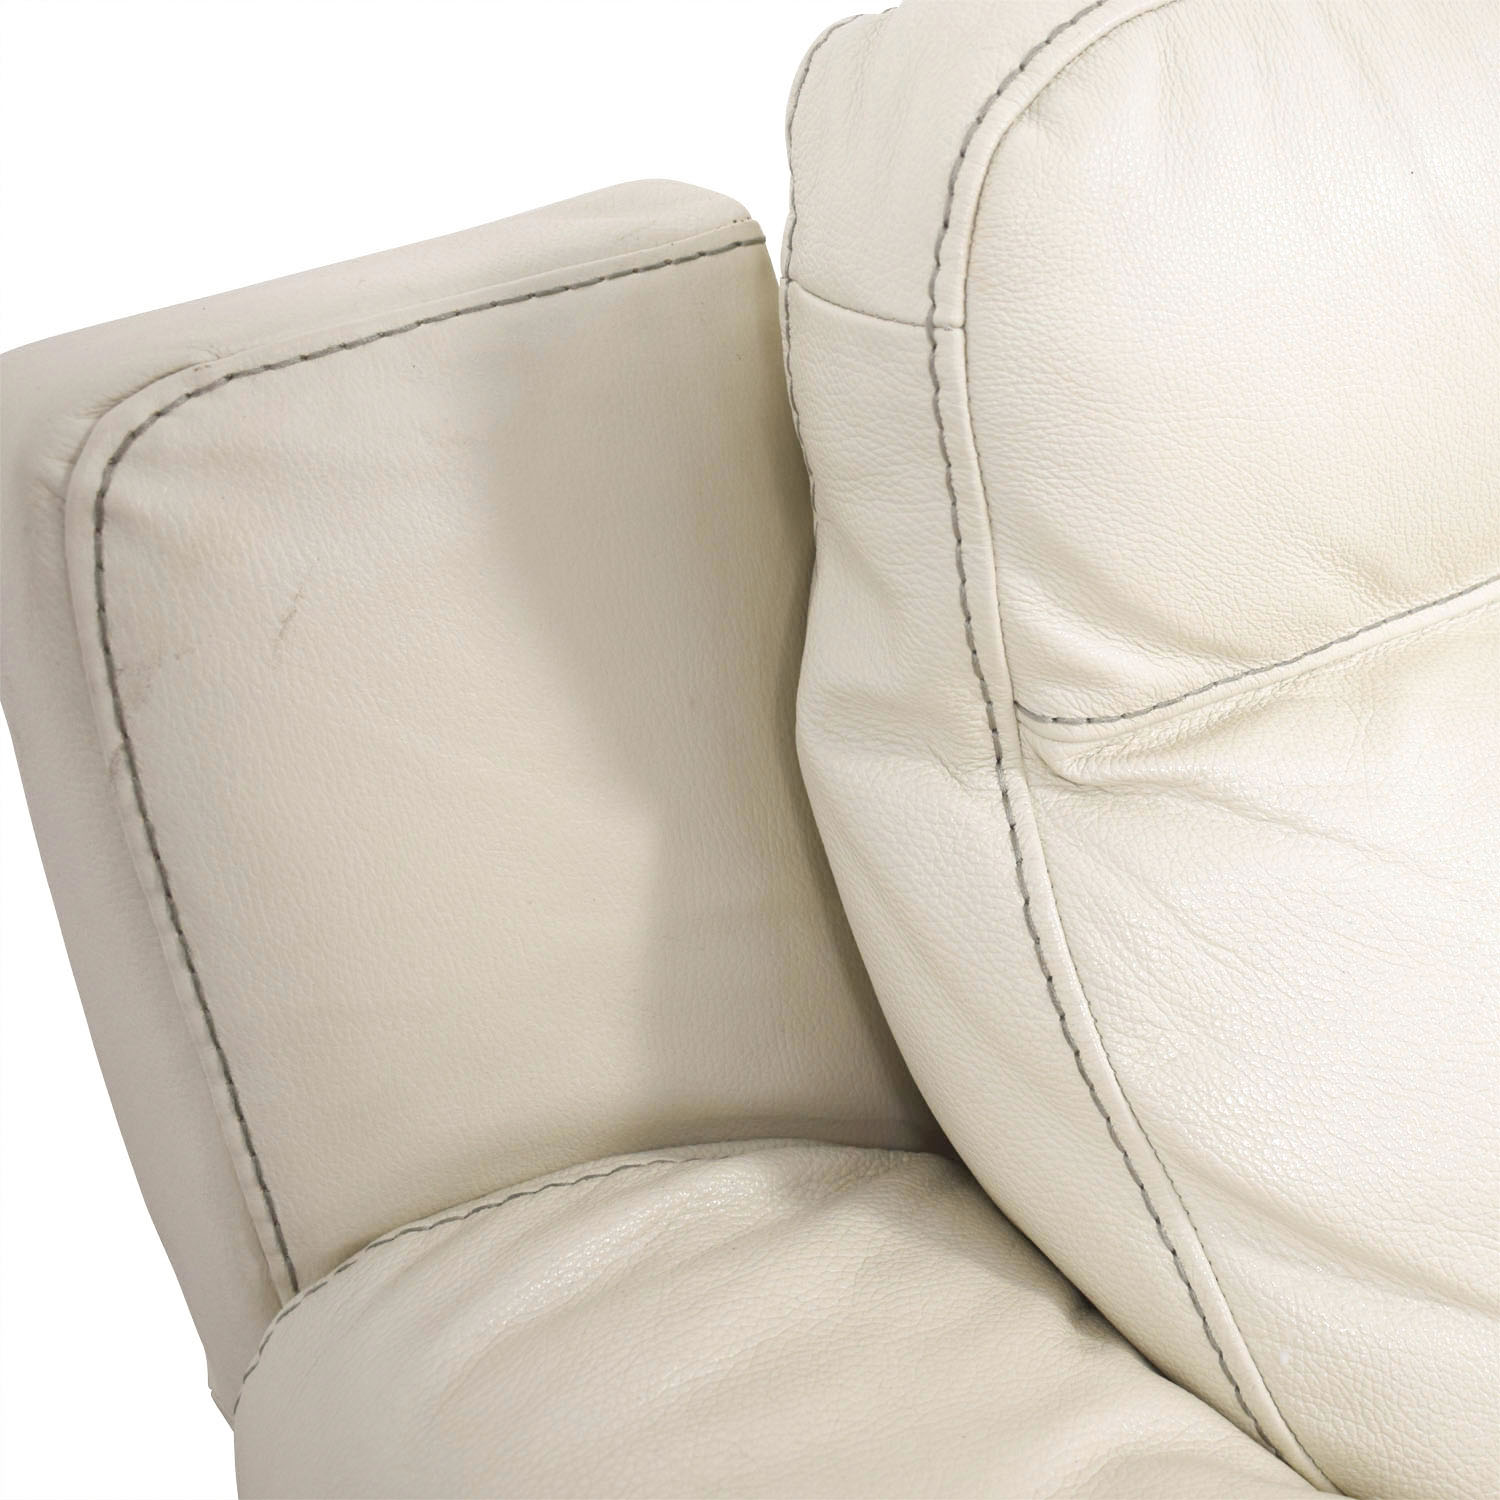 Macys Sell: Macy's Macy's Off White Leather Recliner Sofa